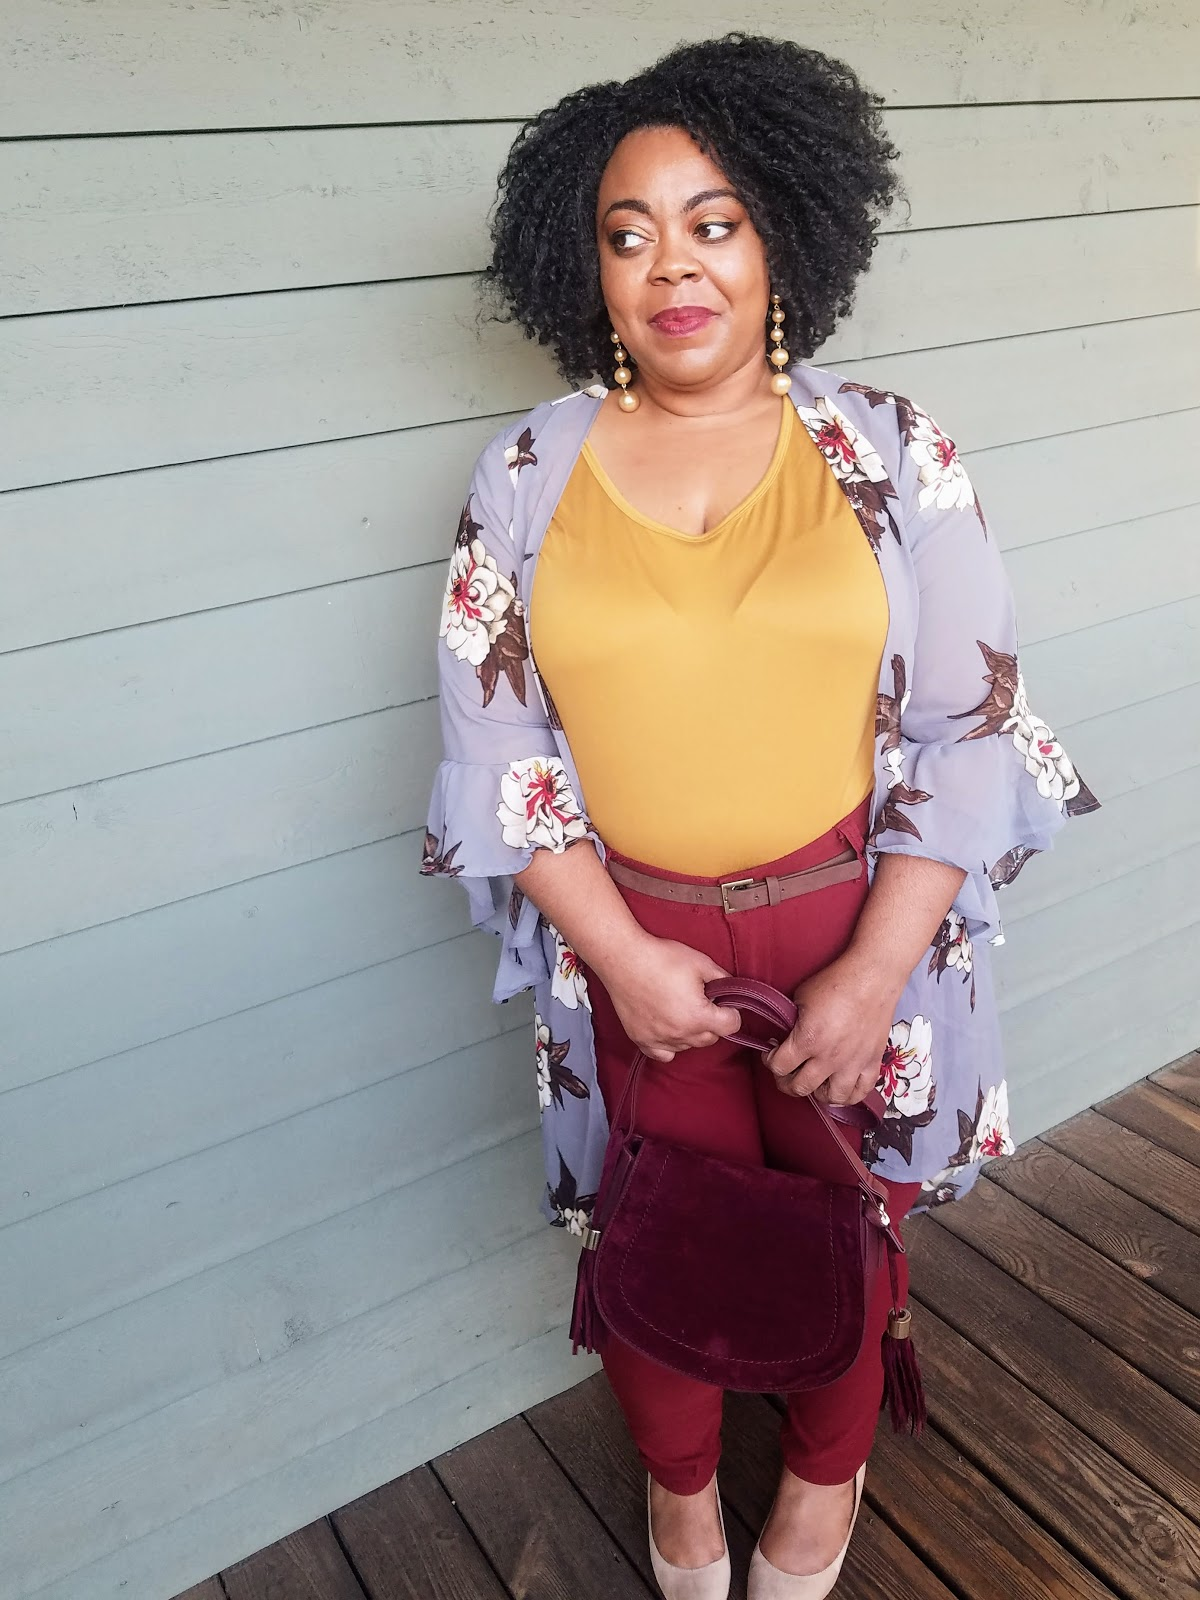 It's Fashion floral duster, Citi Trends mustard dress top, Cato Fashions faux suede pumps, Rue 21 burgundy tassel handbag